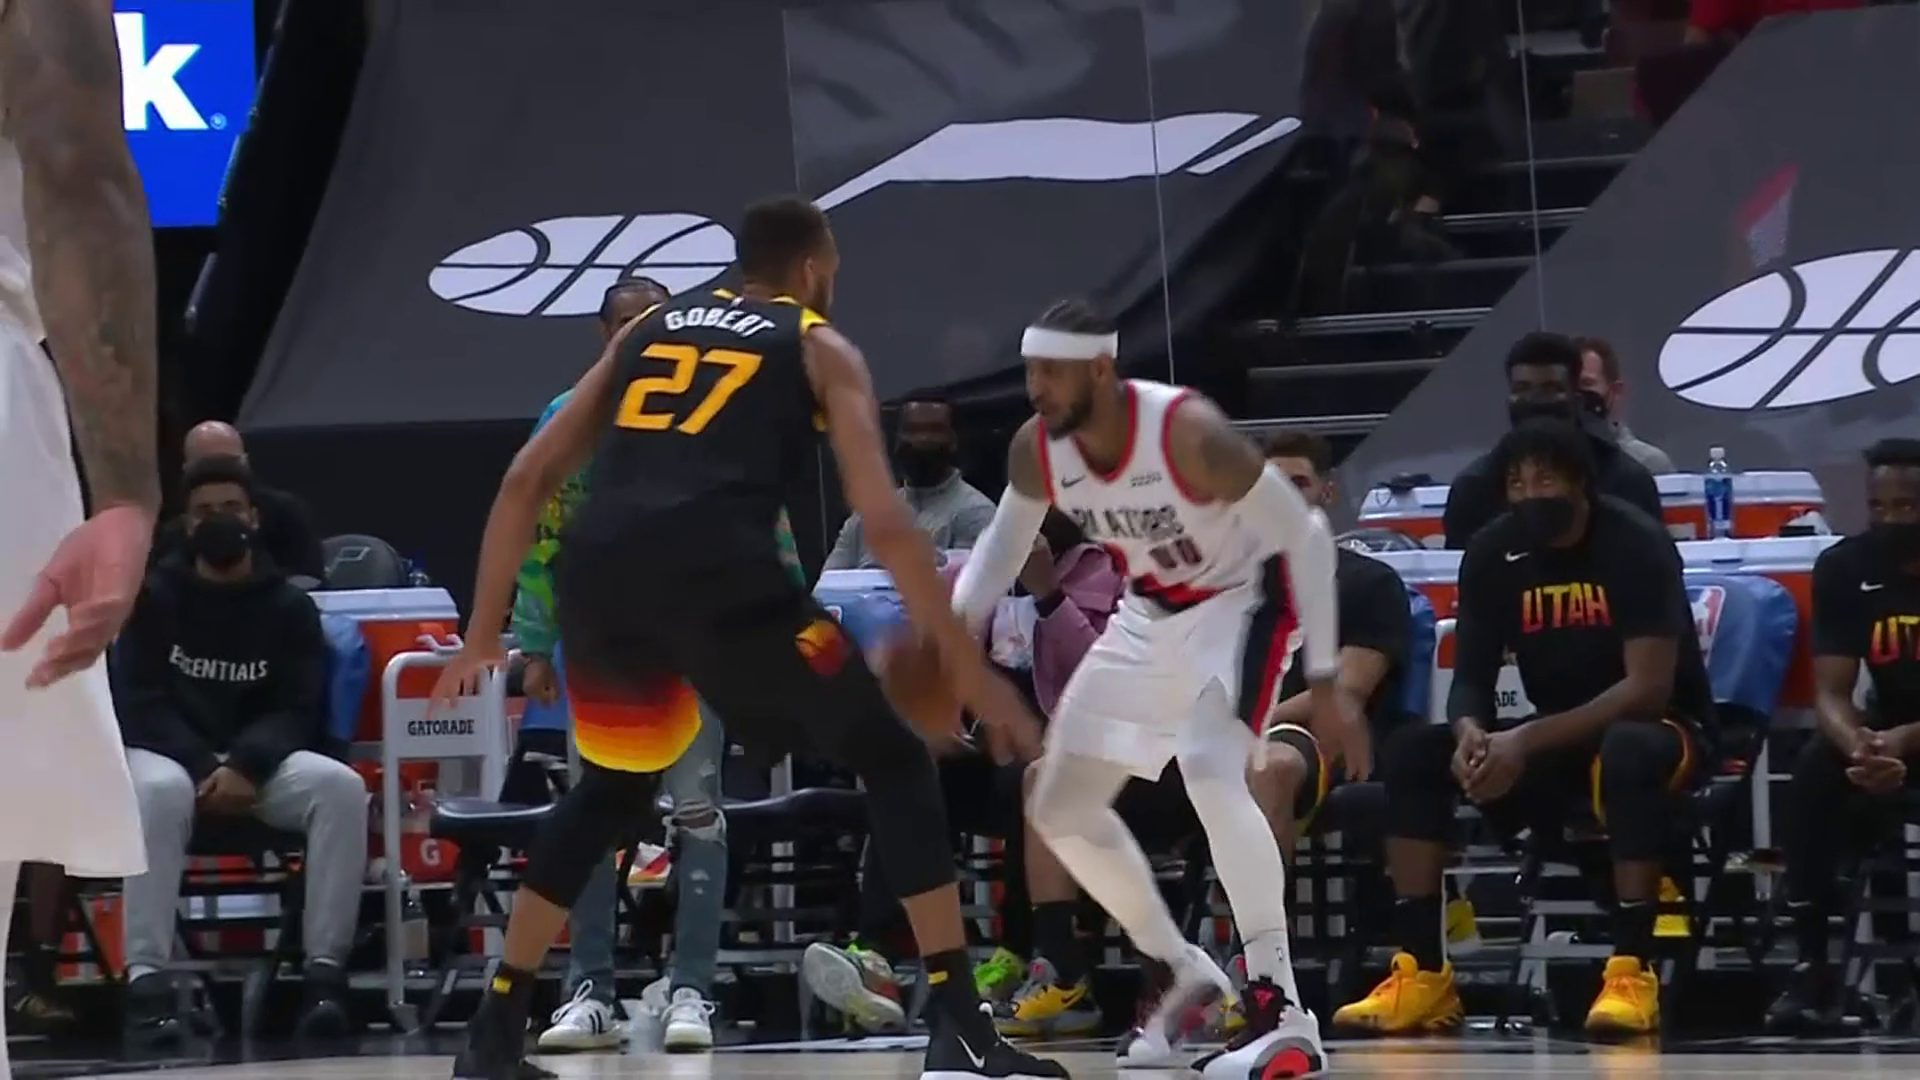 Carmelo Anthony with the ice cold bucket over Gobert